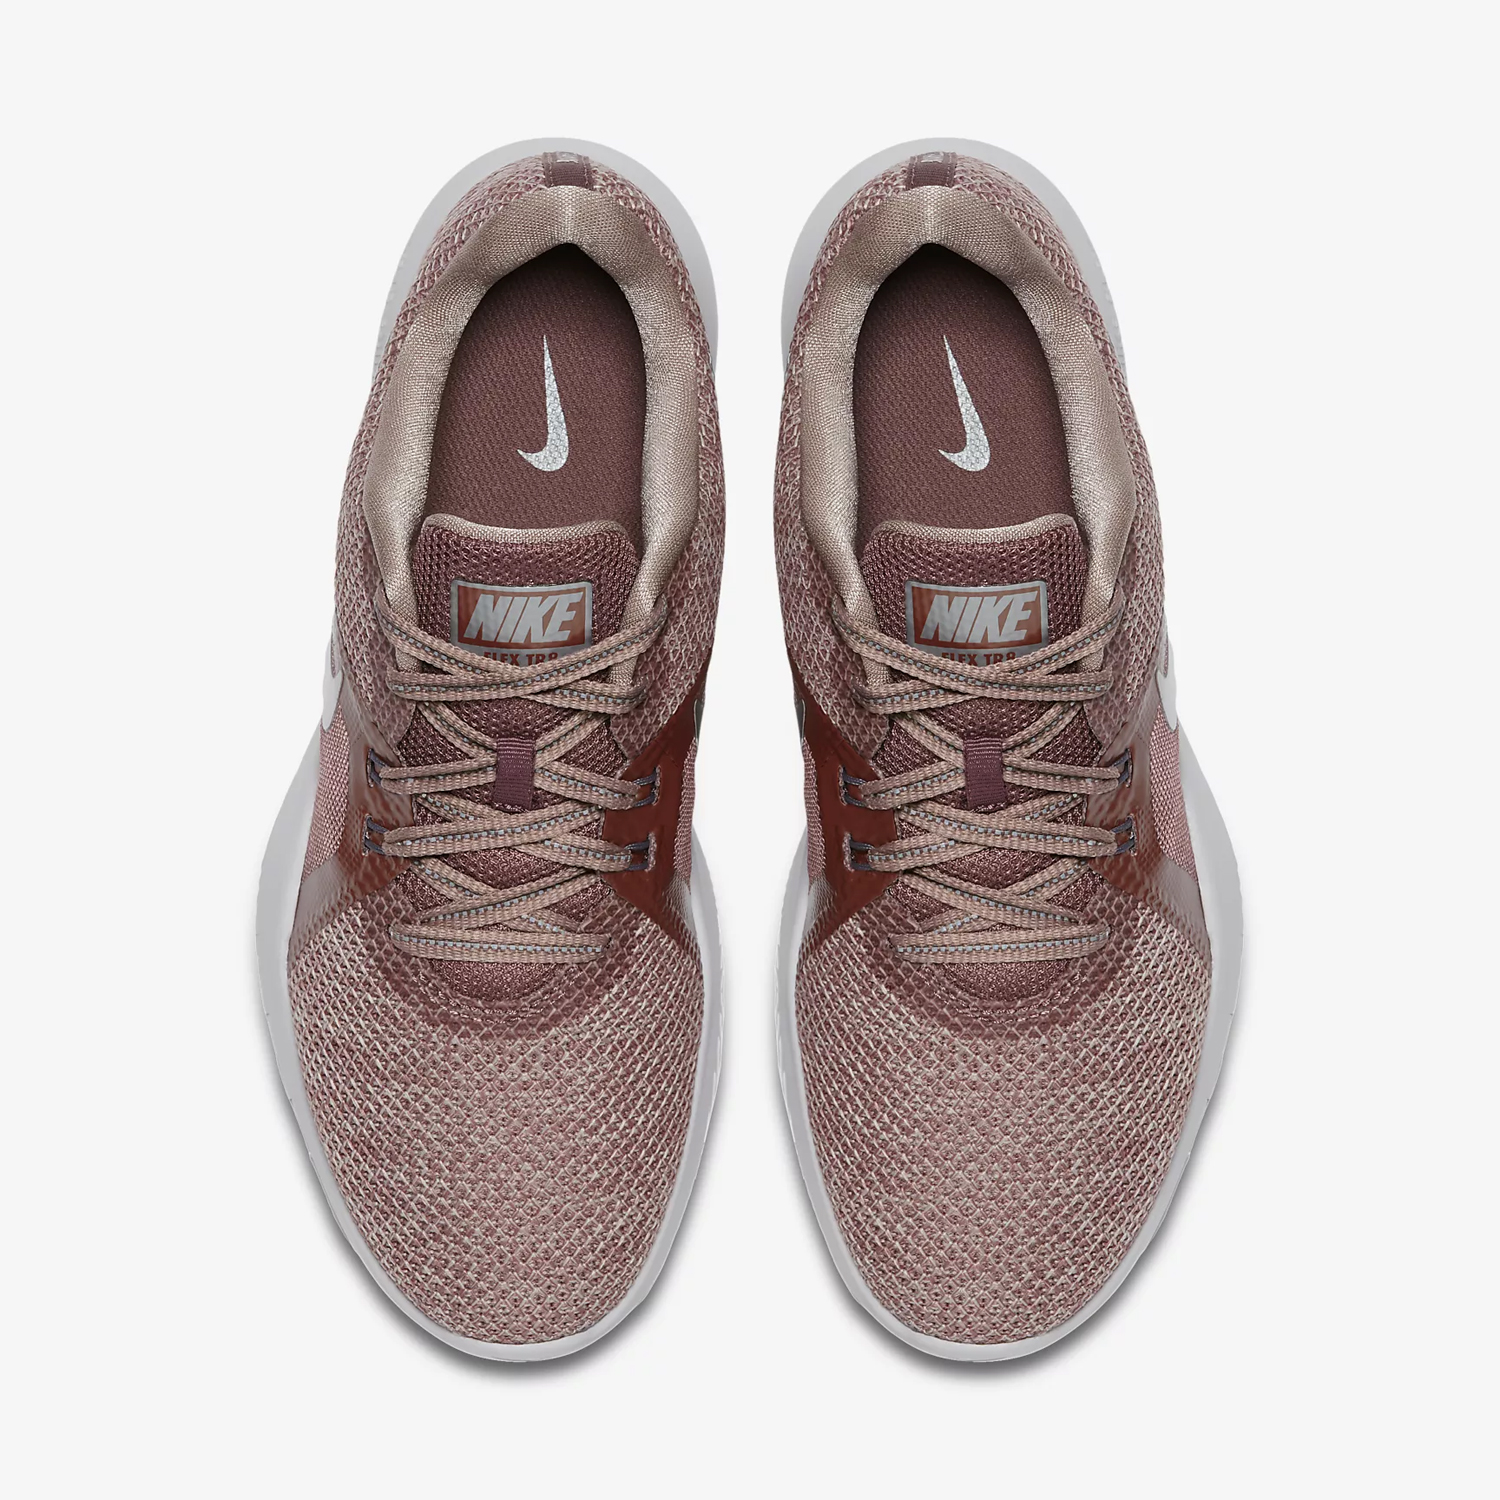 80d59ab59aeb Nike Women s Flex 8 Fitness Trainer- Smokey Mauve. Product code  924340-200